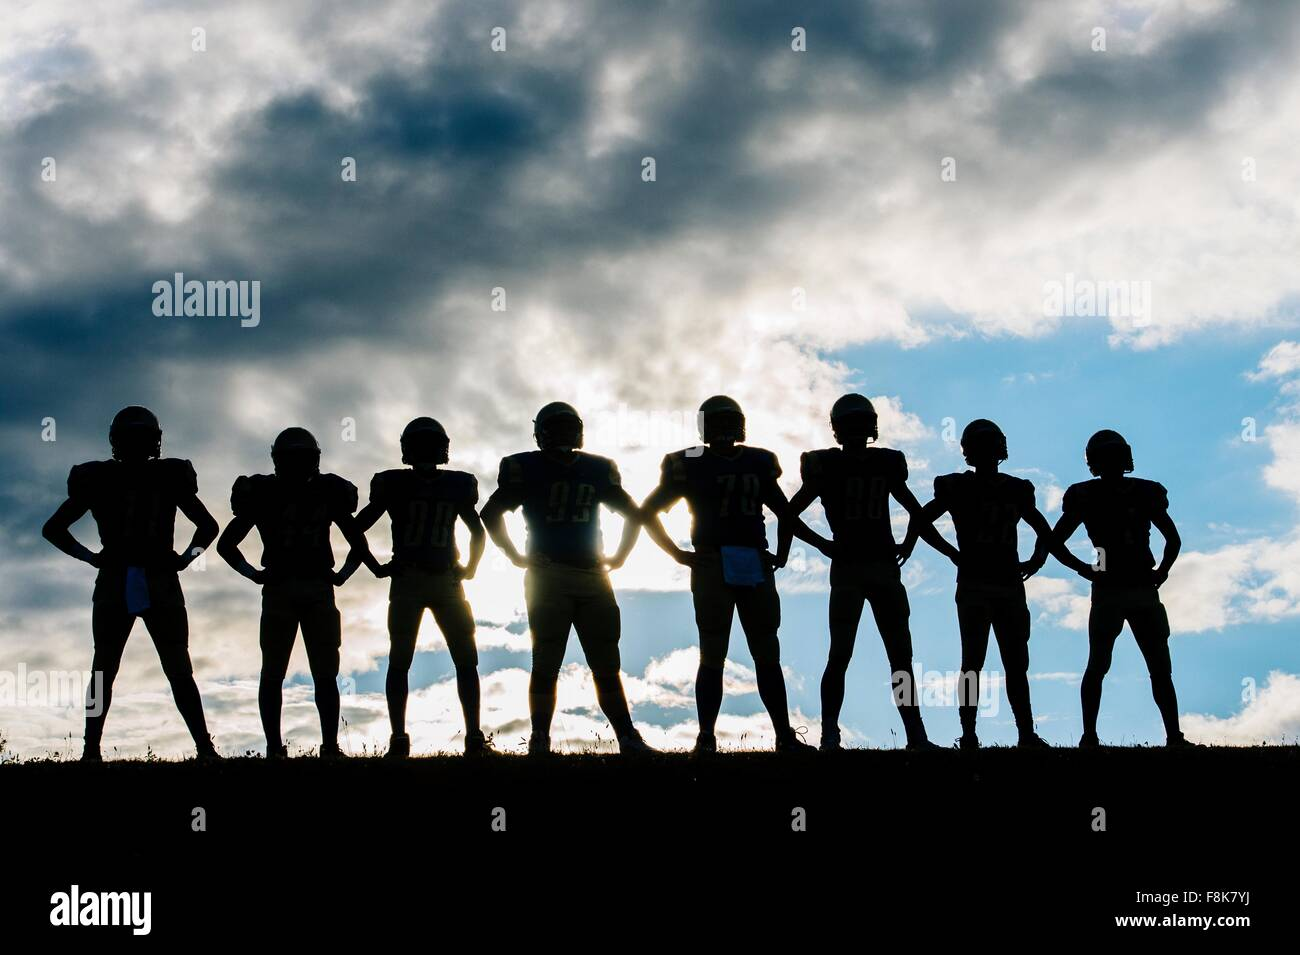 Silhouette of group of young american football players, standing in row, hands on hips - Stock Image